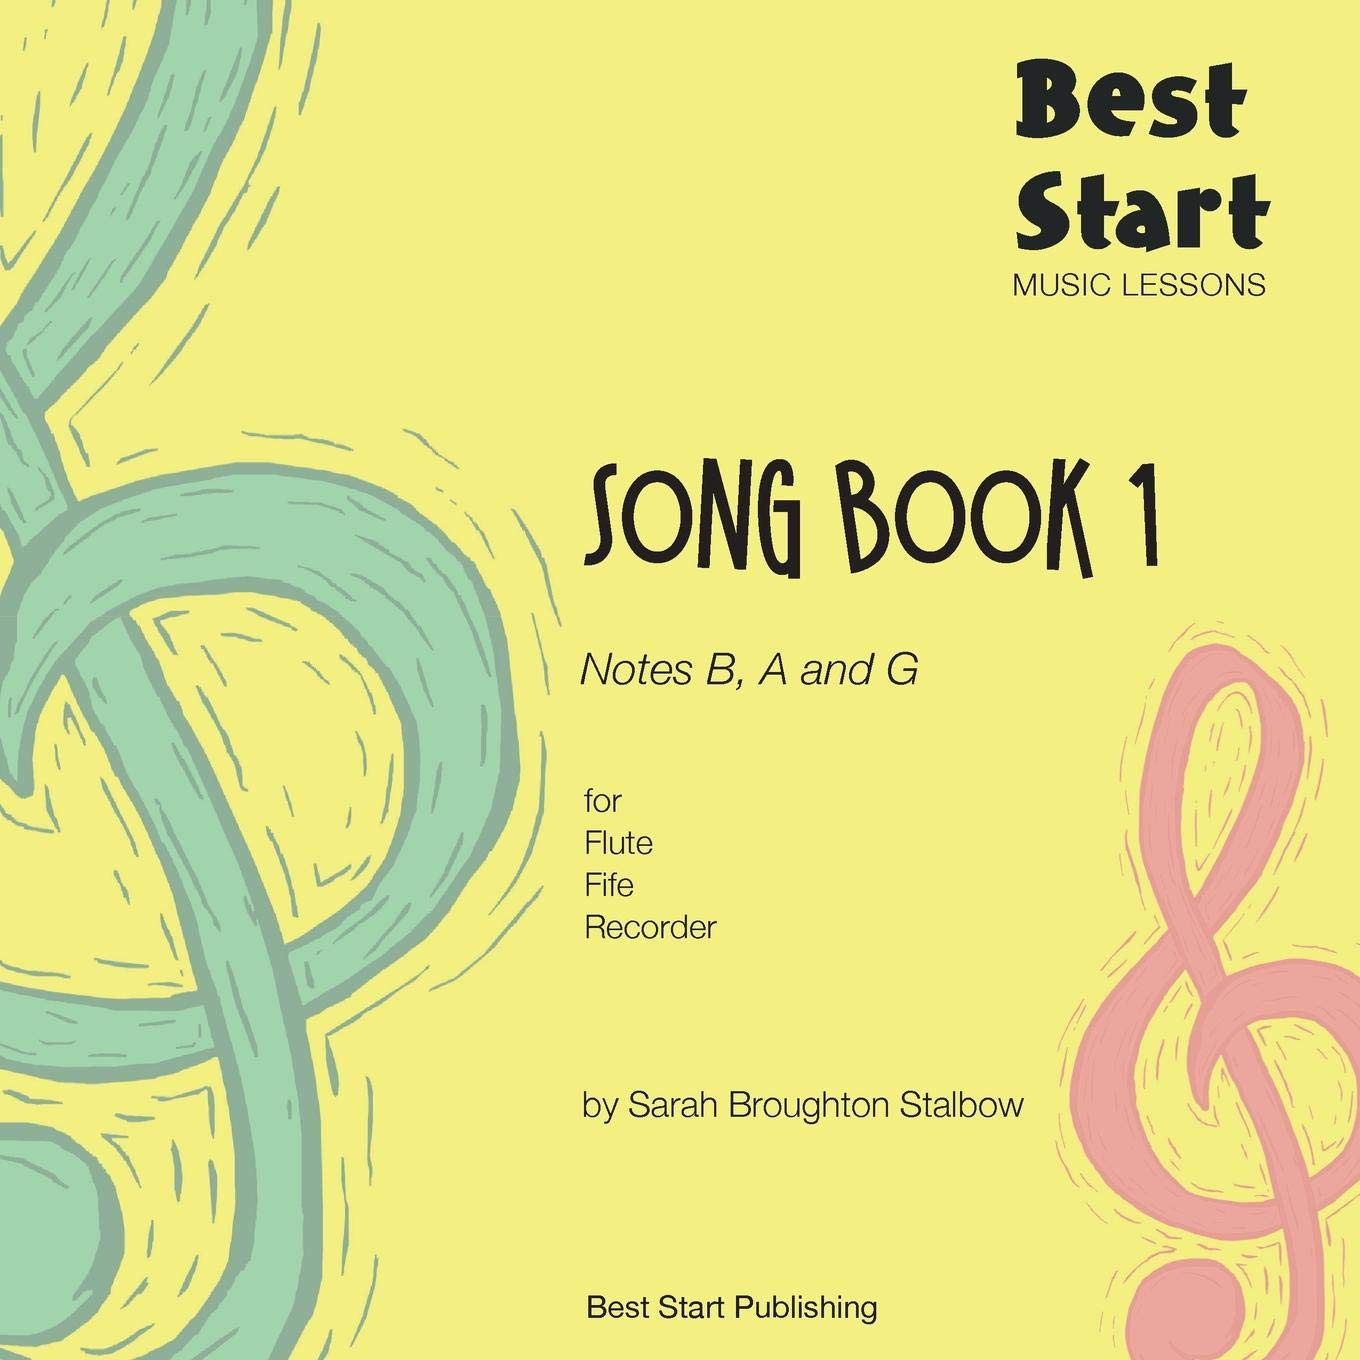 Amazon com: Best Start Music Lessons: Song Book 1, for Flute